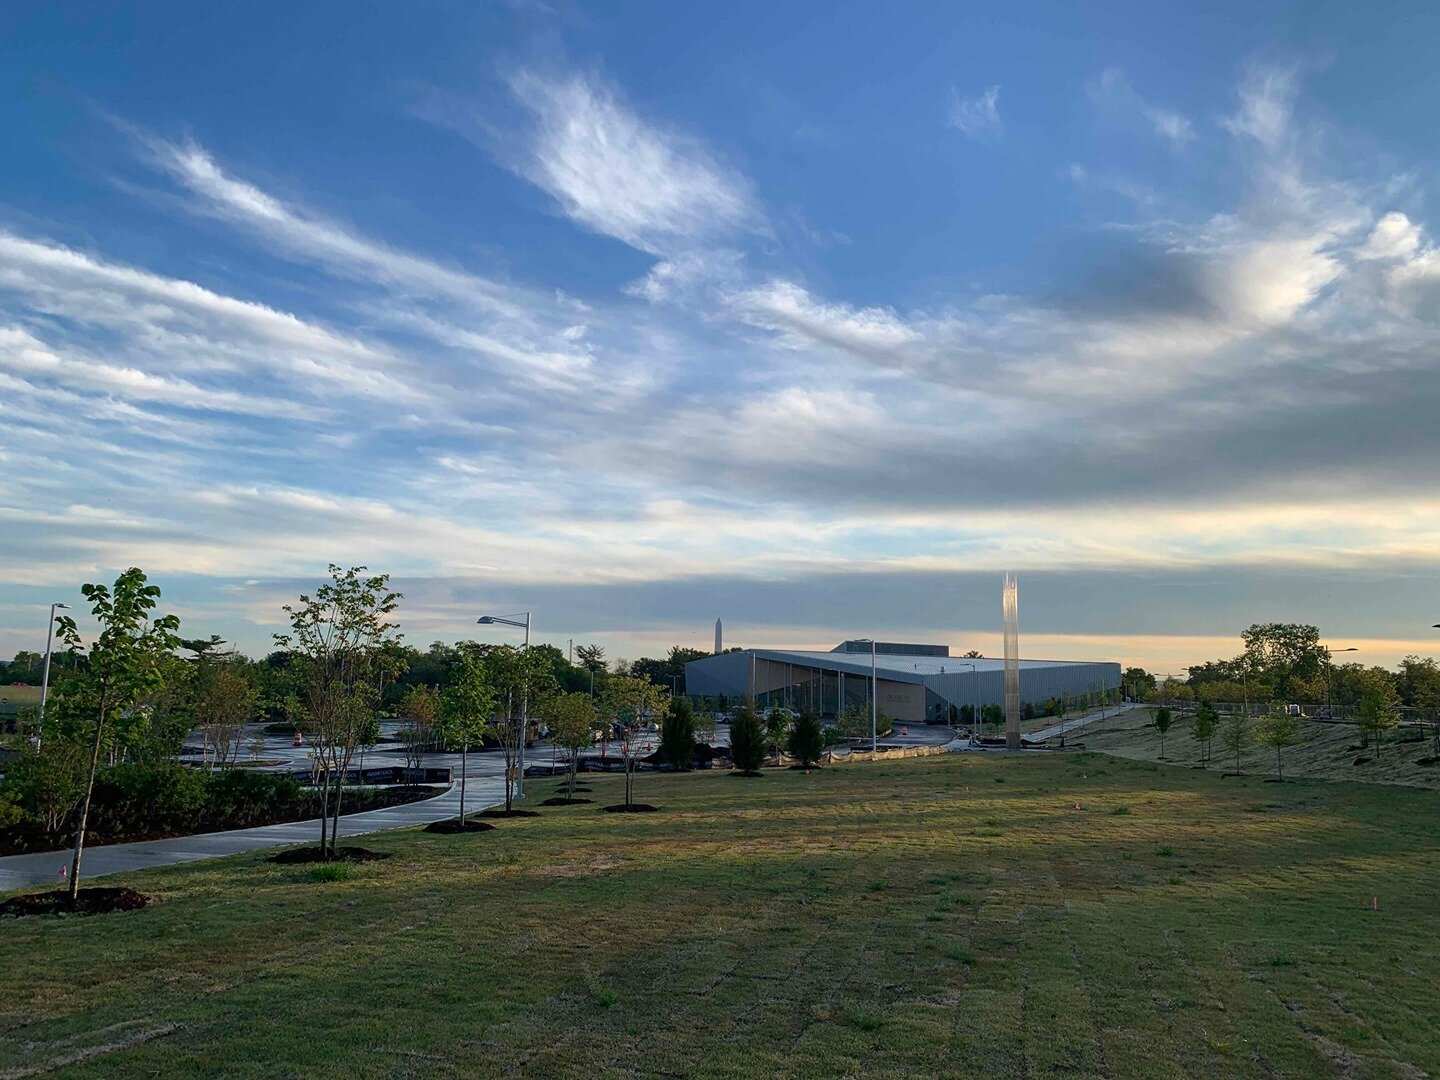 It's a beautiful day in Arlington County at the Long Bridge Park Aquatics and Fitness Center construction site! #BuildSomething⠀ ⠀ 📸  Alex Bruhn, Project Engineer | Want to learn more about this project? Visit: https://buff.ly/3bF5YlJ